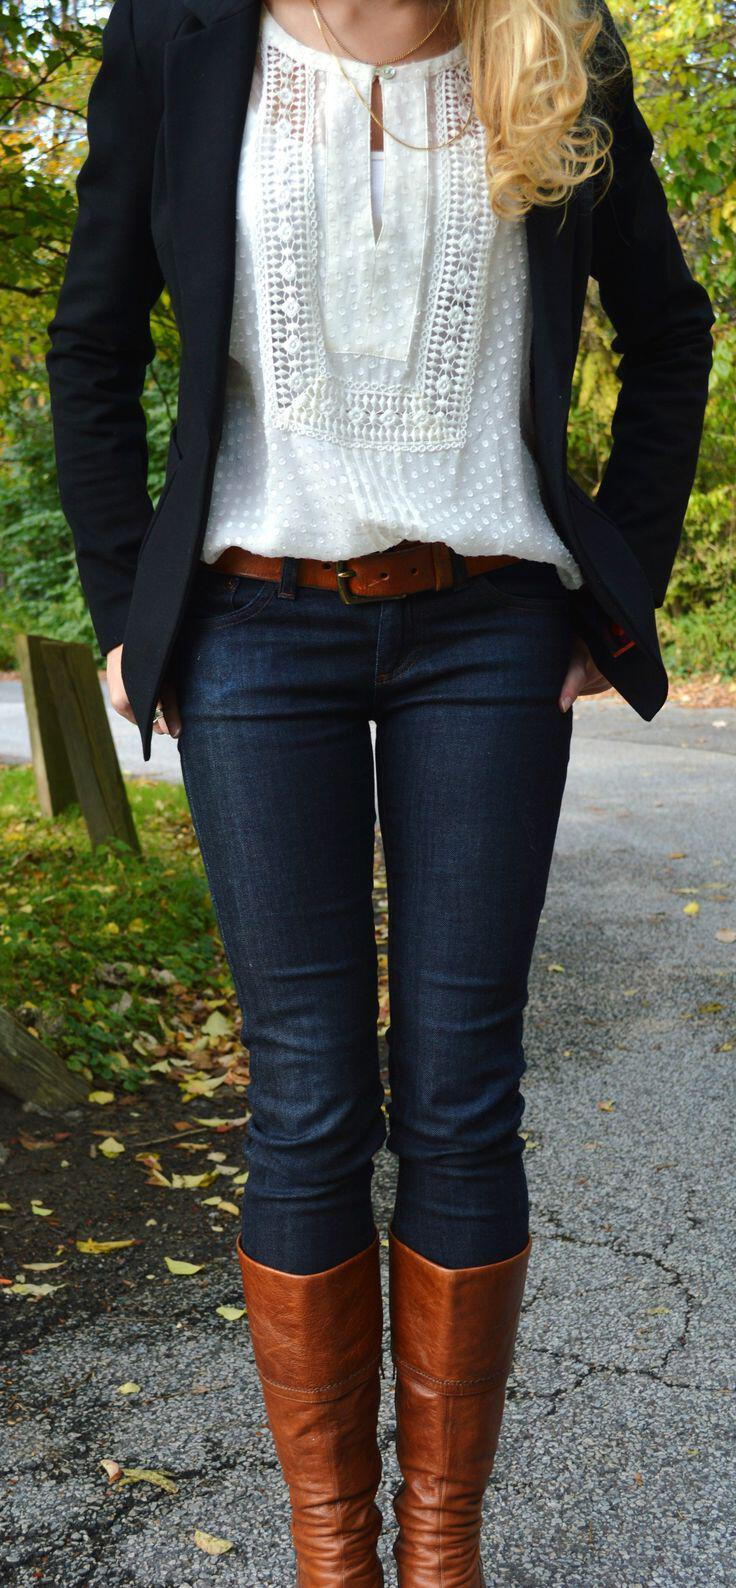 15 stylish fall outfits with cognac boots 1 - 15 stylish fall outfits with cognac boots